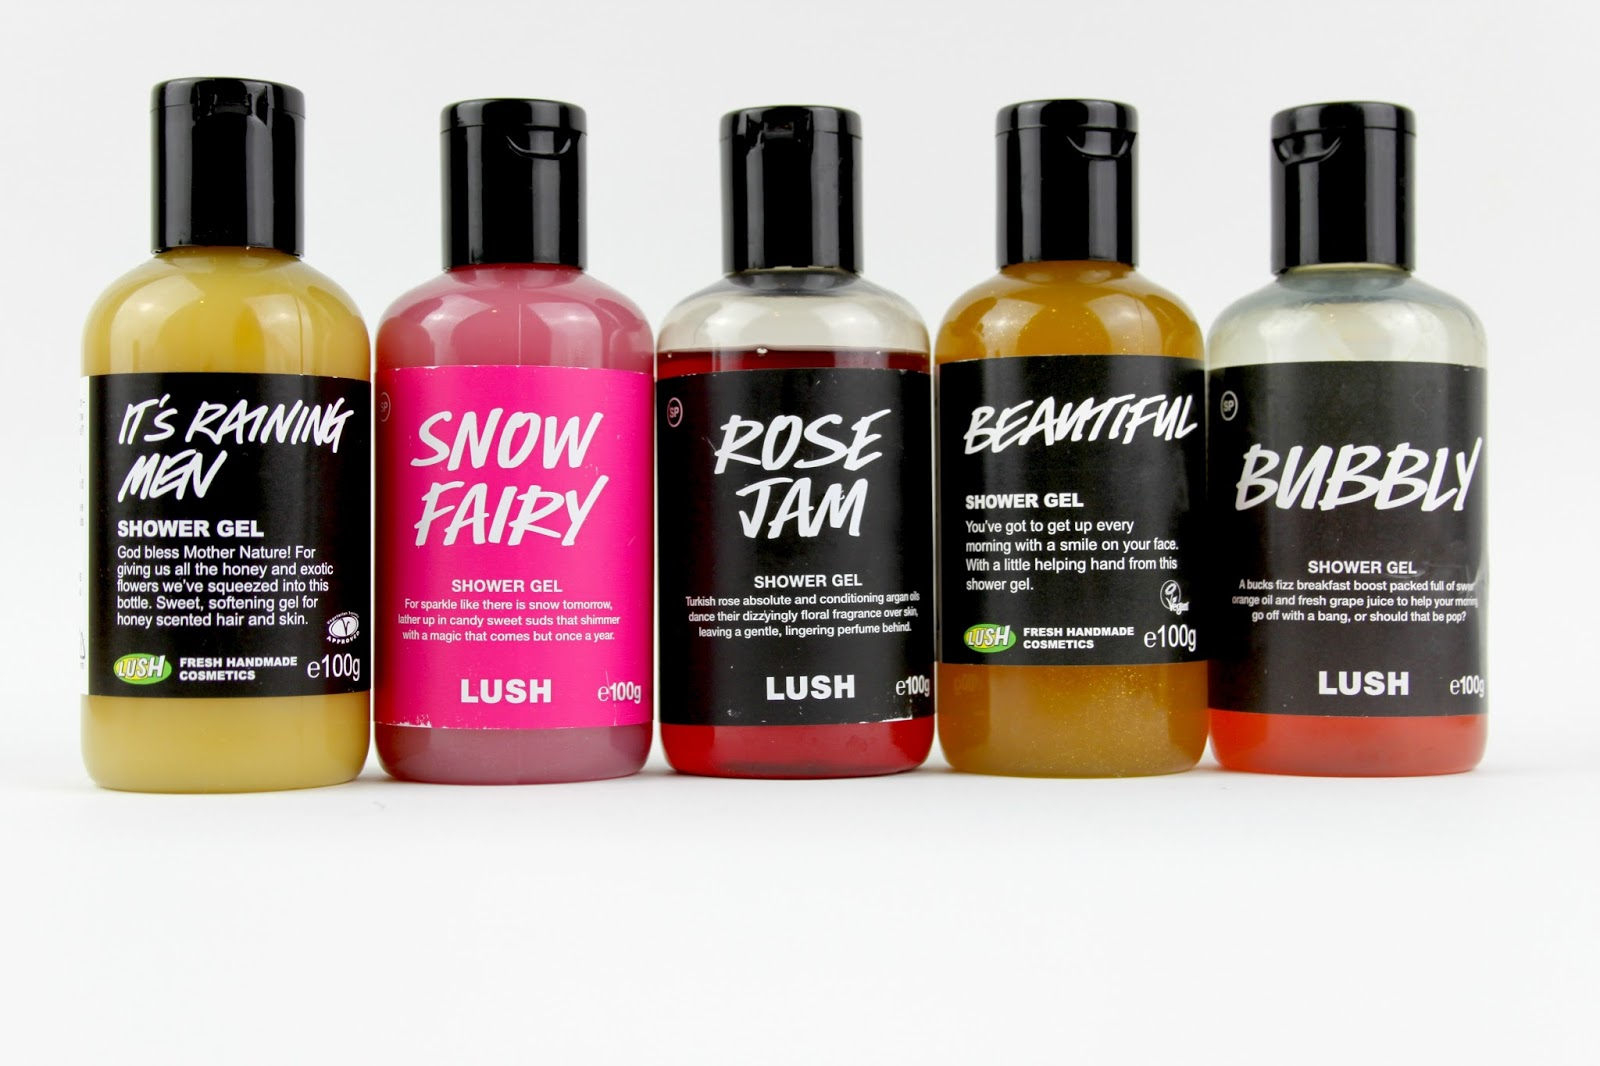 Sweet Allure It's A Shower Thing. lush lifestyle shower gel batj bomb snow fairy beautiful bubbly rose jam it's raining men